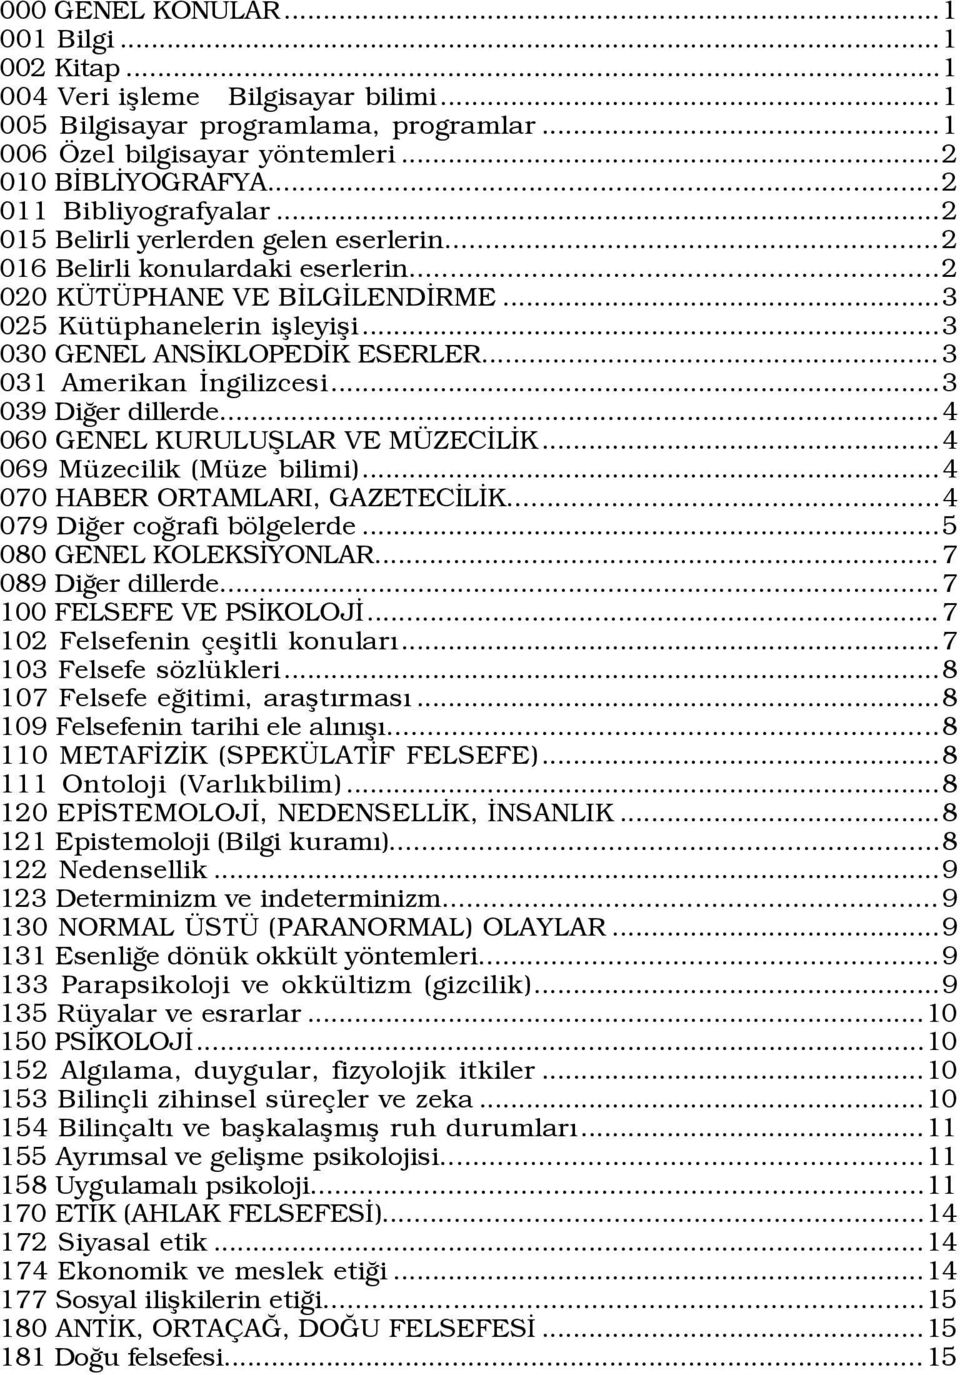 Issn Bubluyografyasi Turkish National Bibliography 2009 7 T C K